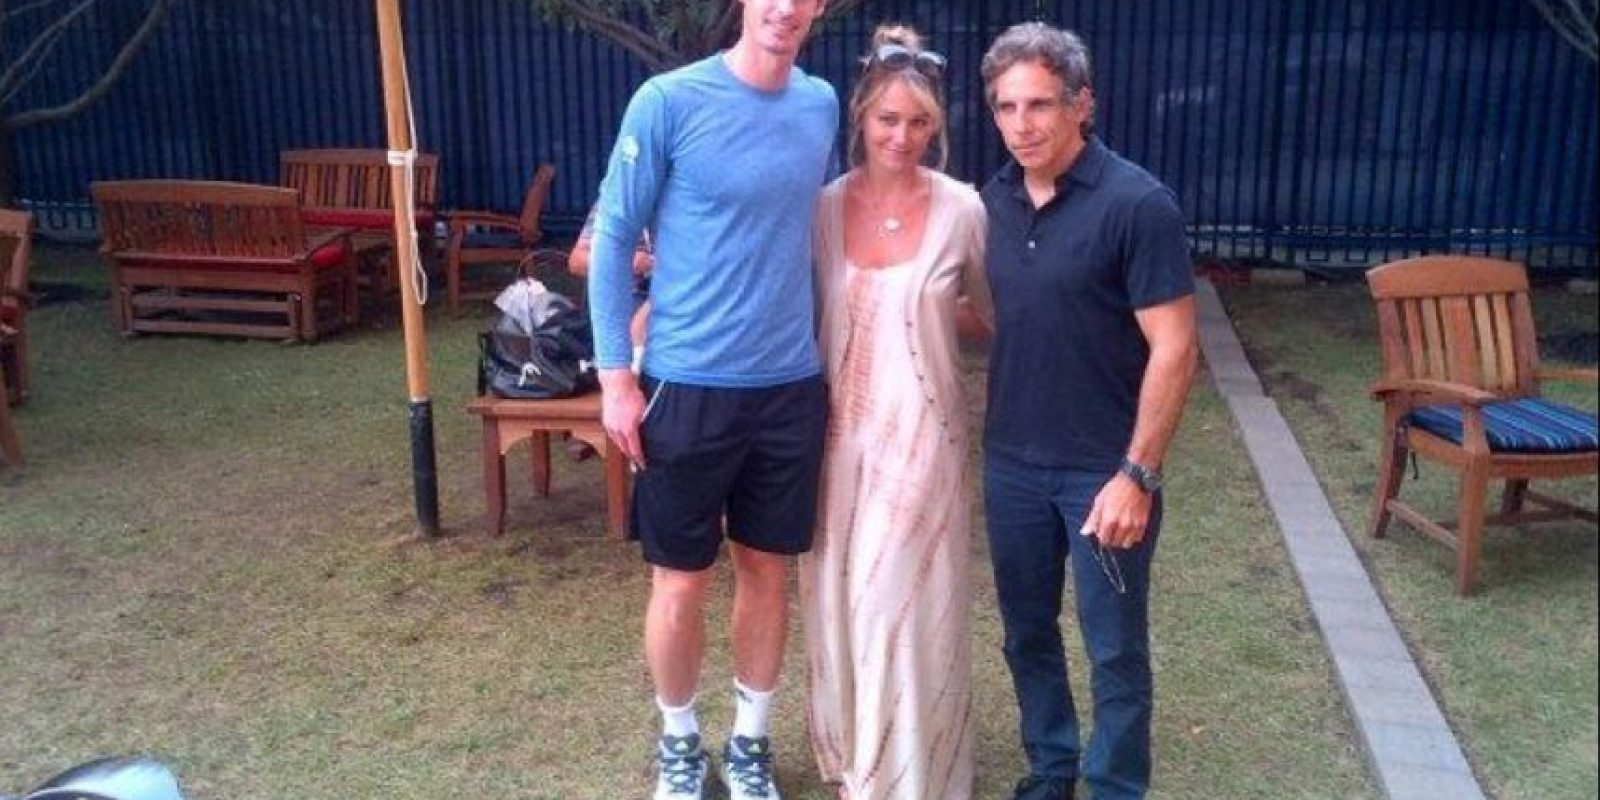 Murray conociendo a famosos actores como Ben Stiller. Foto: twitter.com/andy_murray